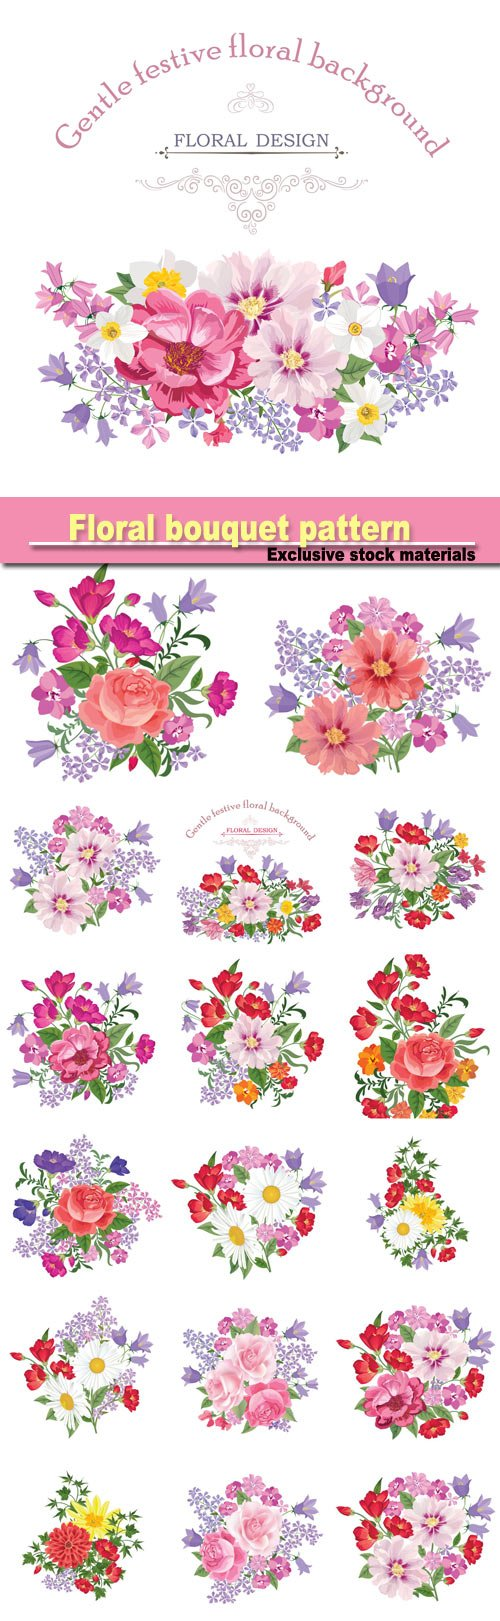 Floral bouquet pattern, vintage vector card with flowers 꽃